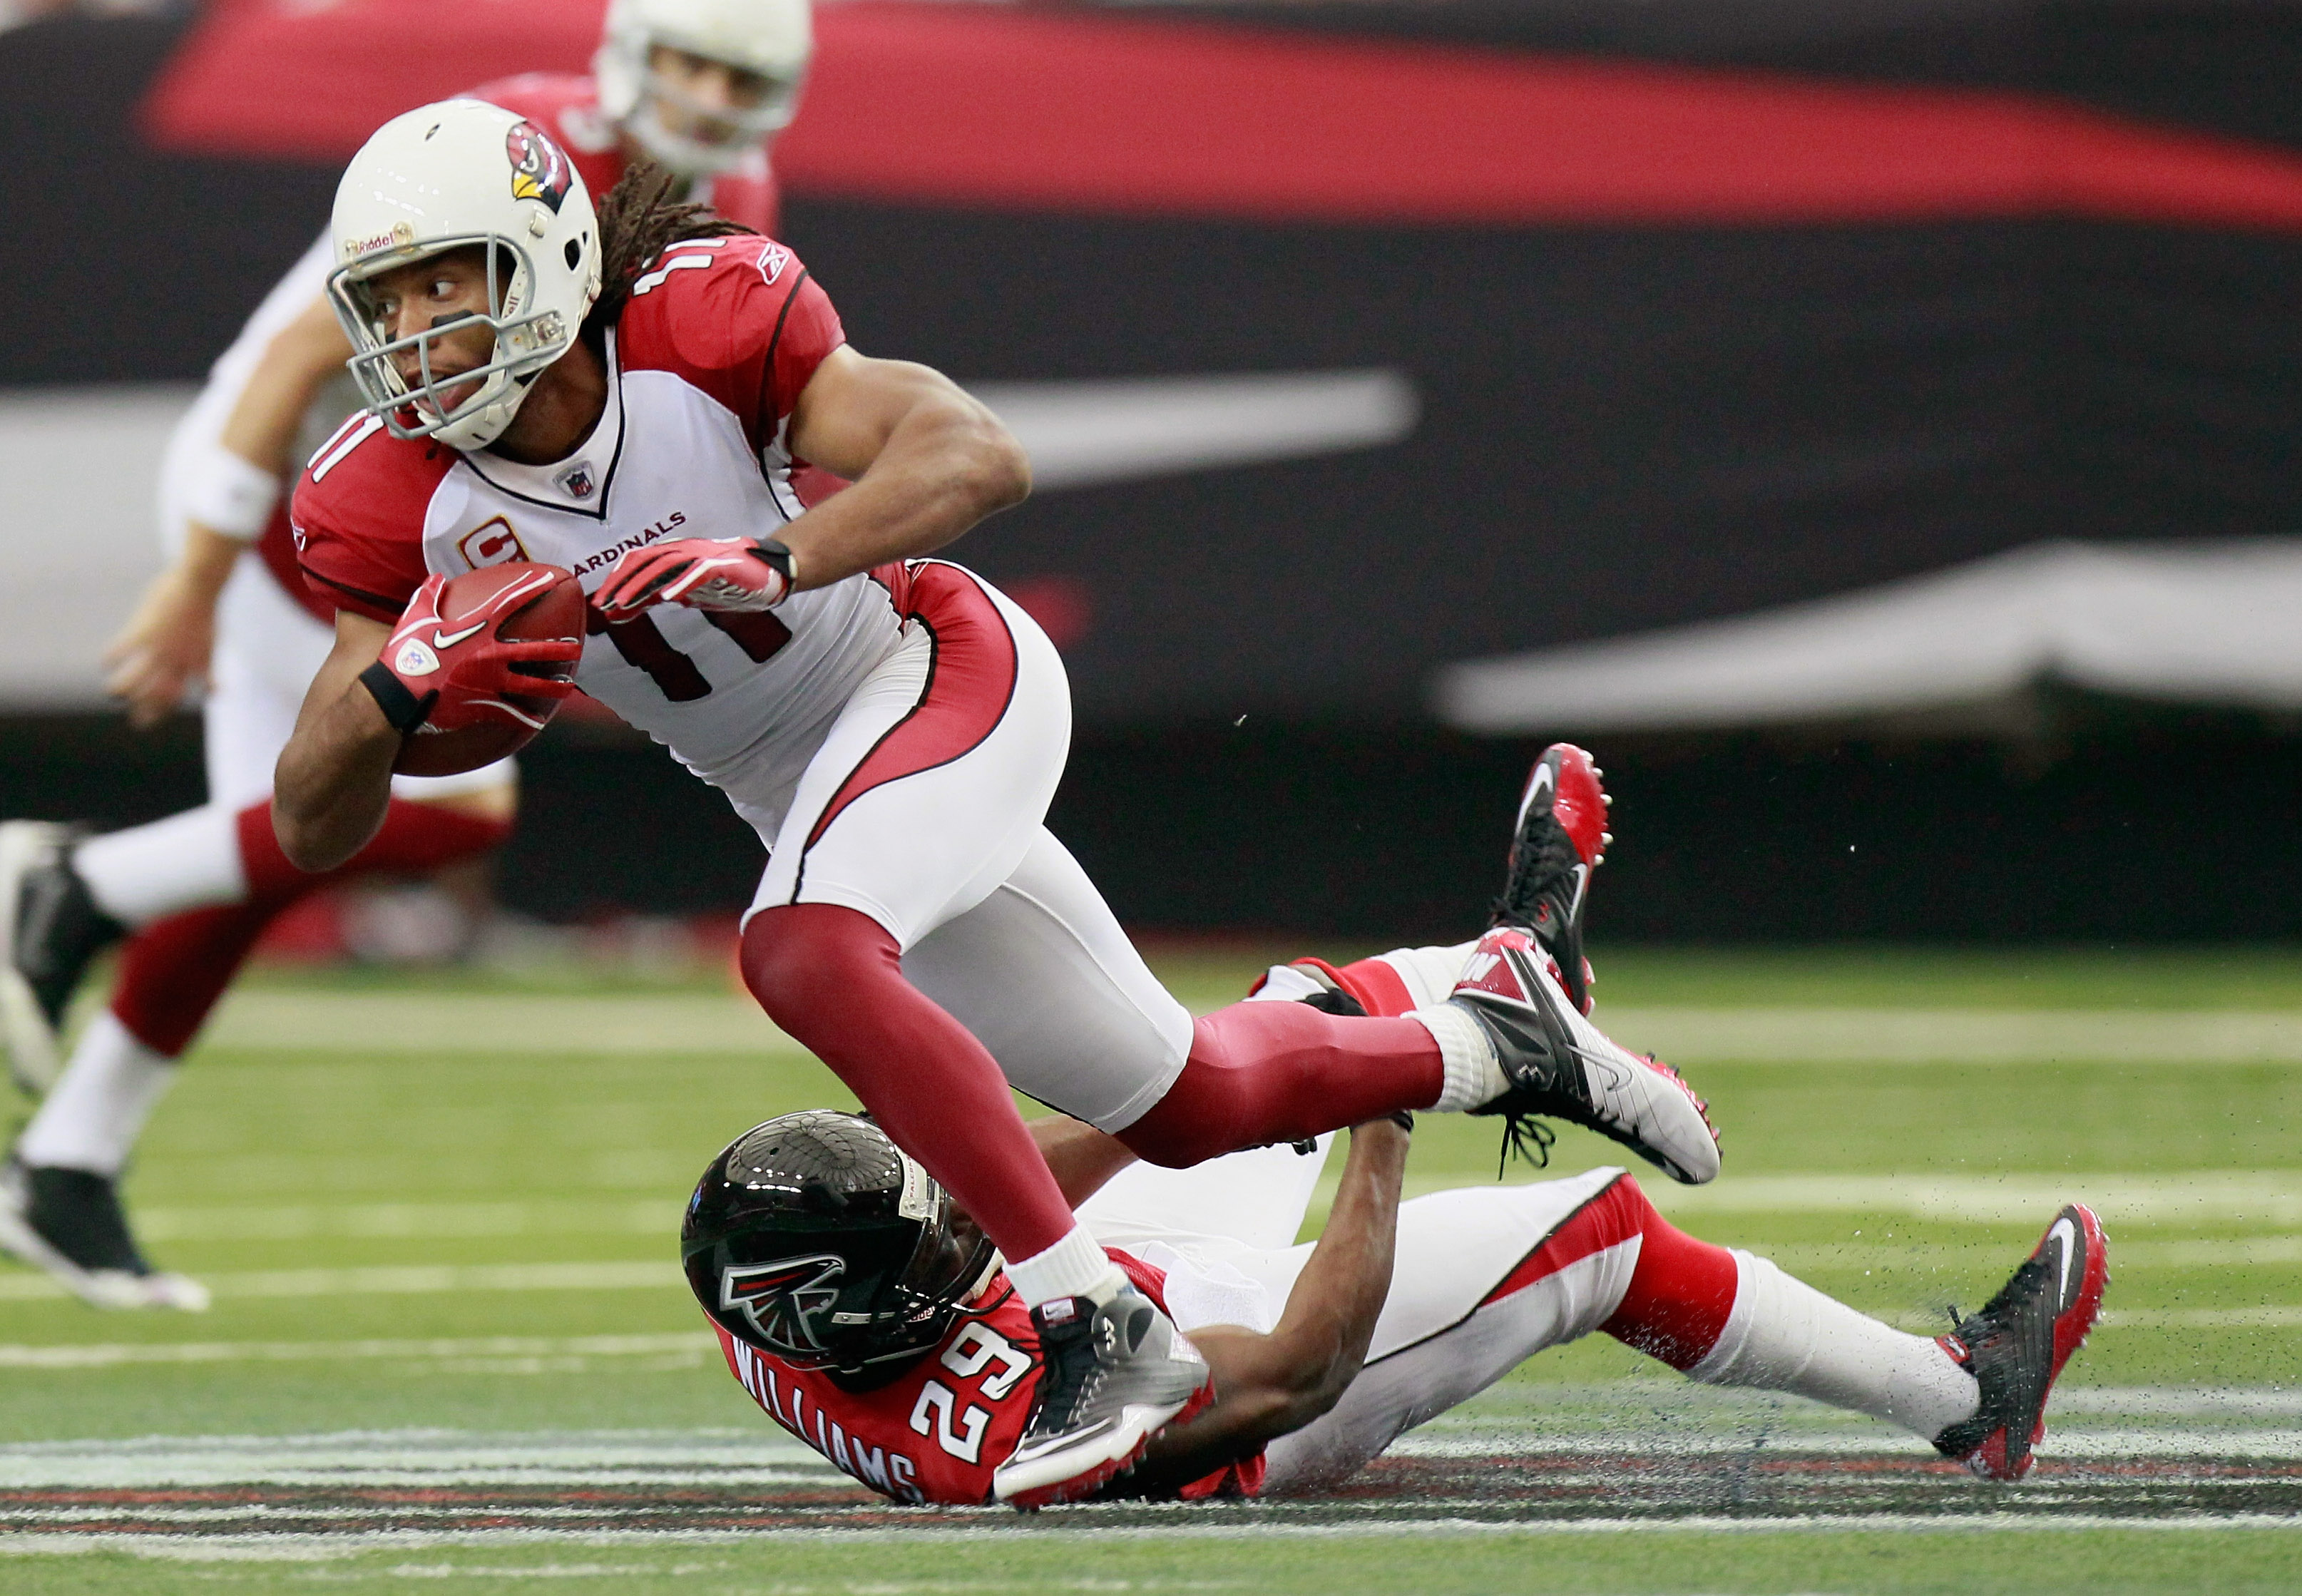 ATLANTA - SEPTEMBER 19:  Larry Fitzgerald #11 of the Arizona Cardinals is tackled by Brian Williams #29 of the Atlanta Falcons at Georgia Dome on September 19, 2010 in Atlanta, Georgia.  (Photo by Kevin C. Cox/Getty Images)